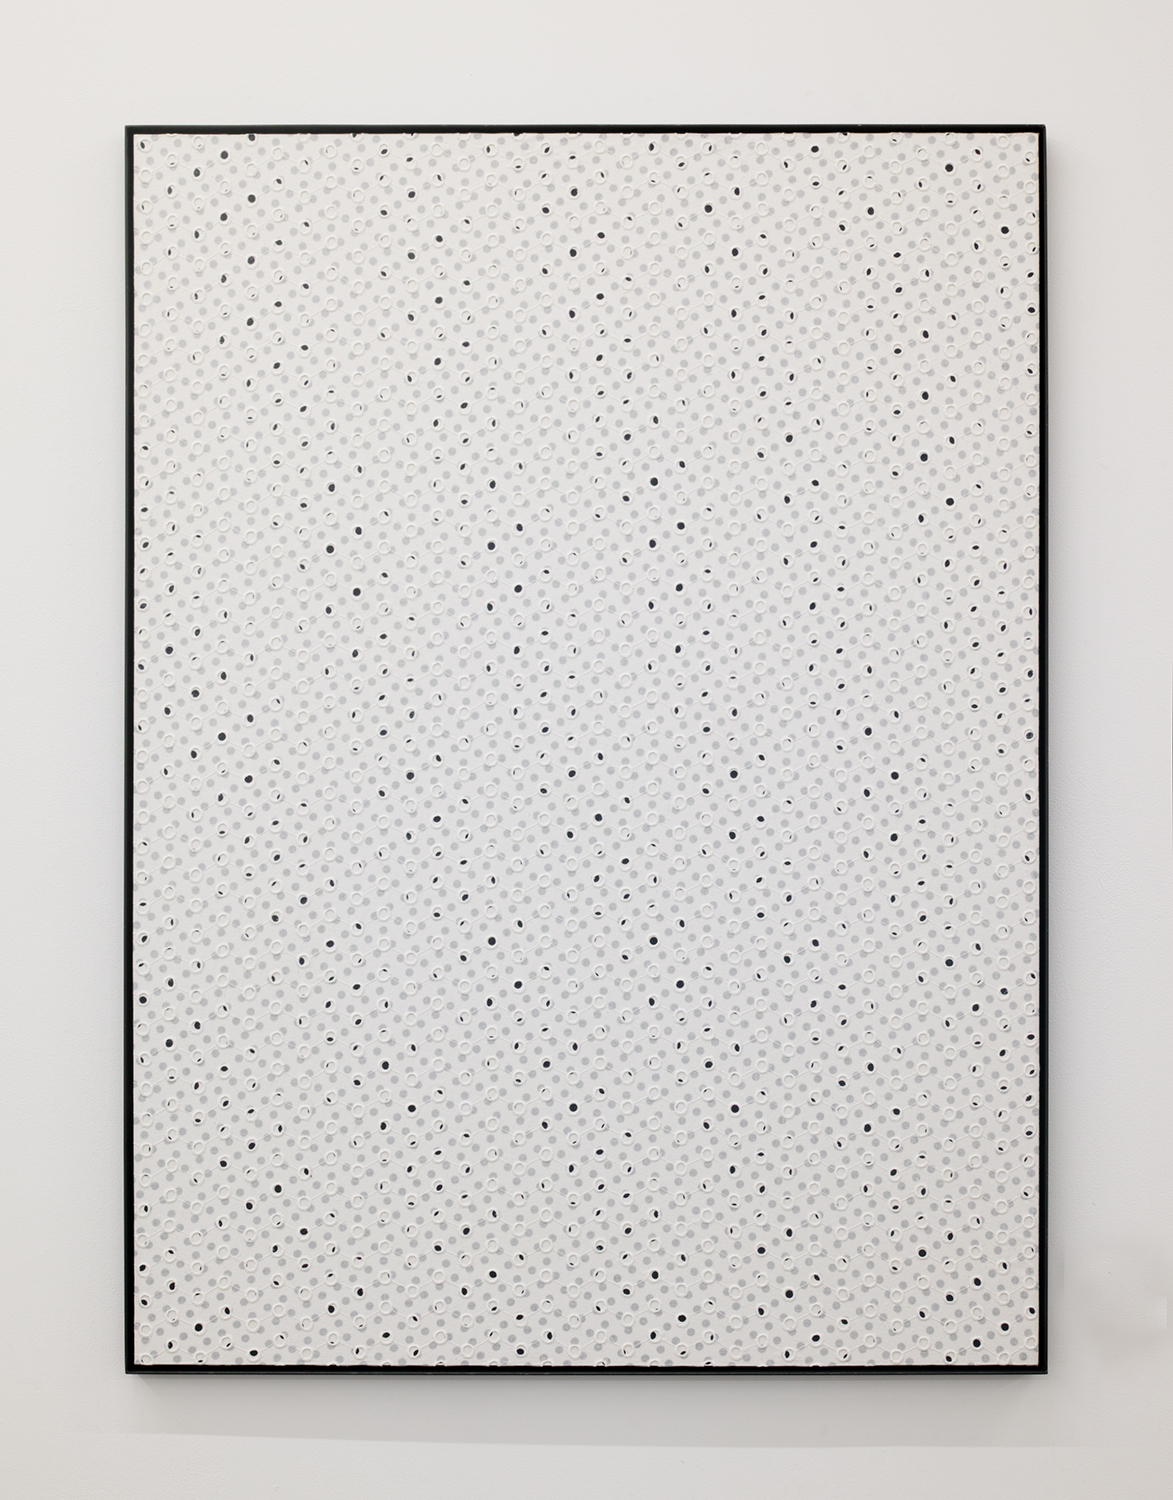 Two rules|Acrylic paint, cotton on panel, iron|1098 x 905 x 25 mm|2020